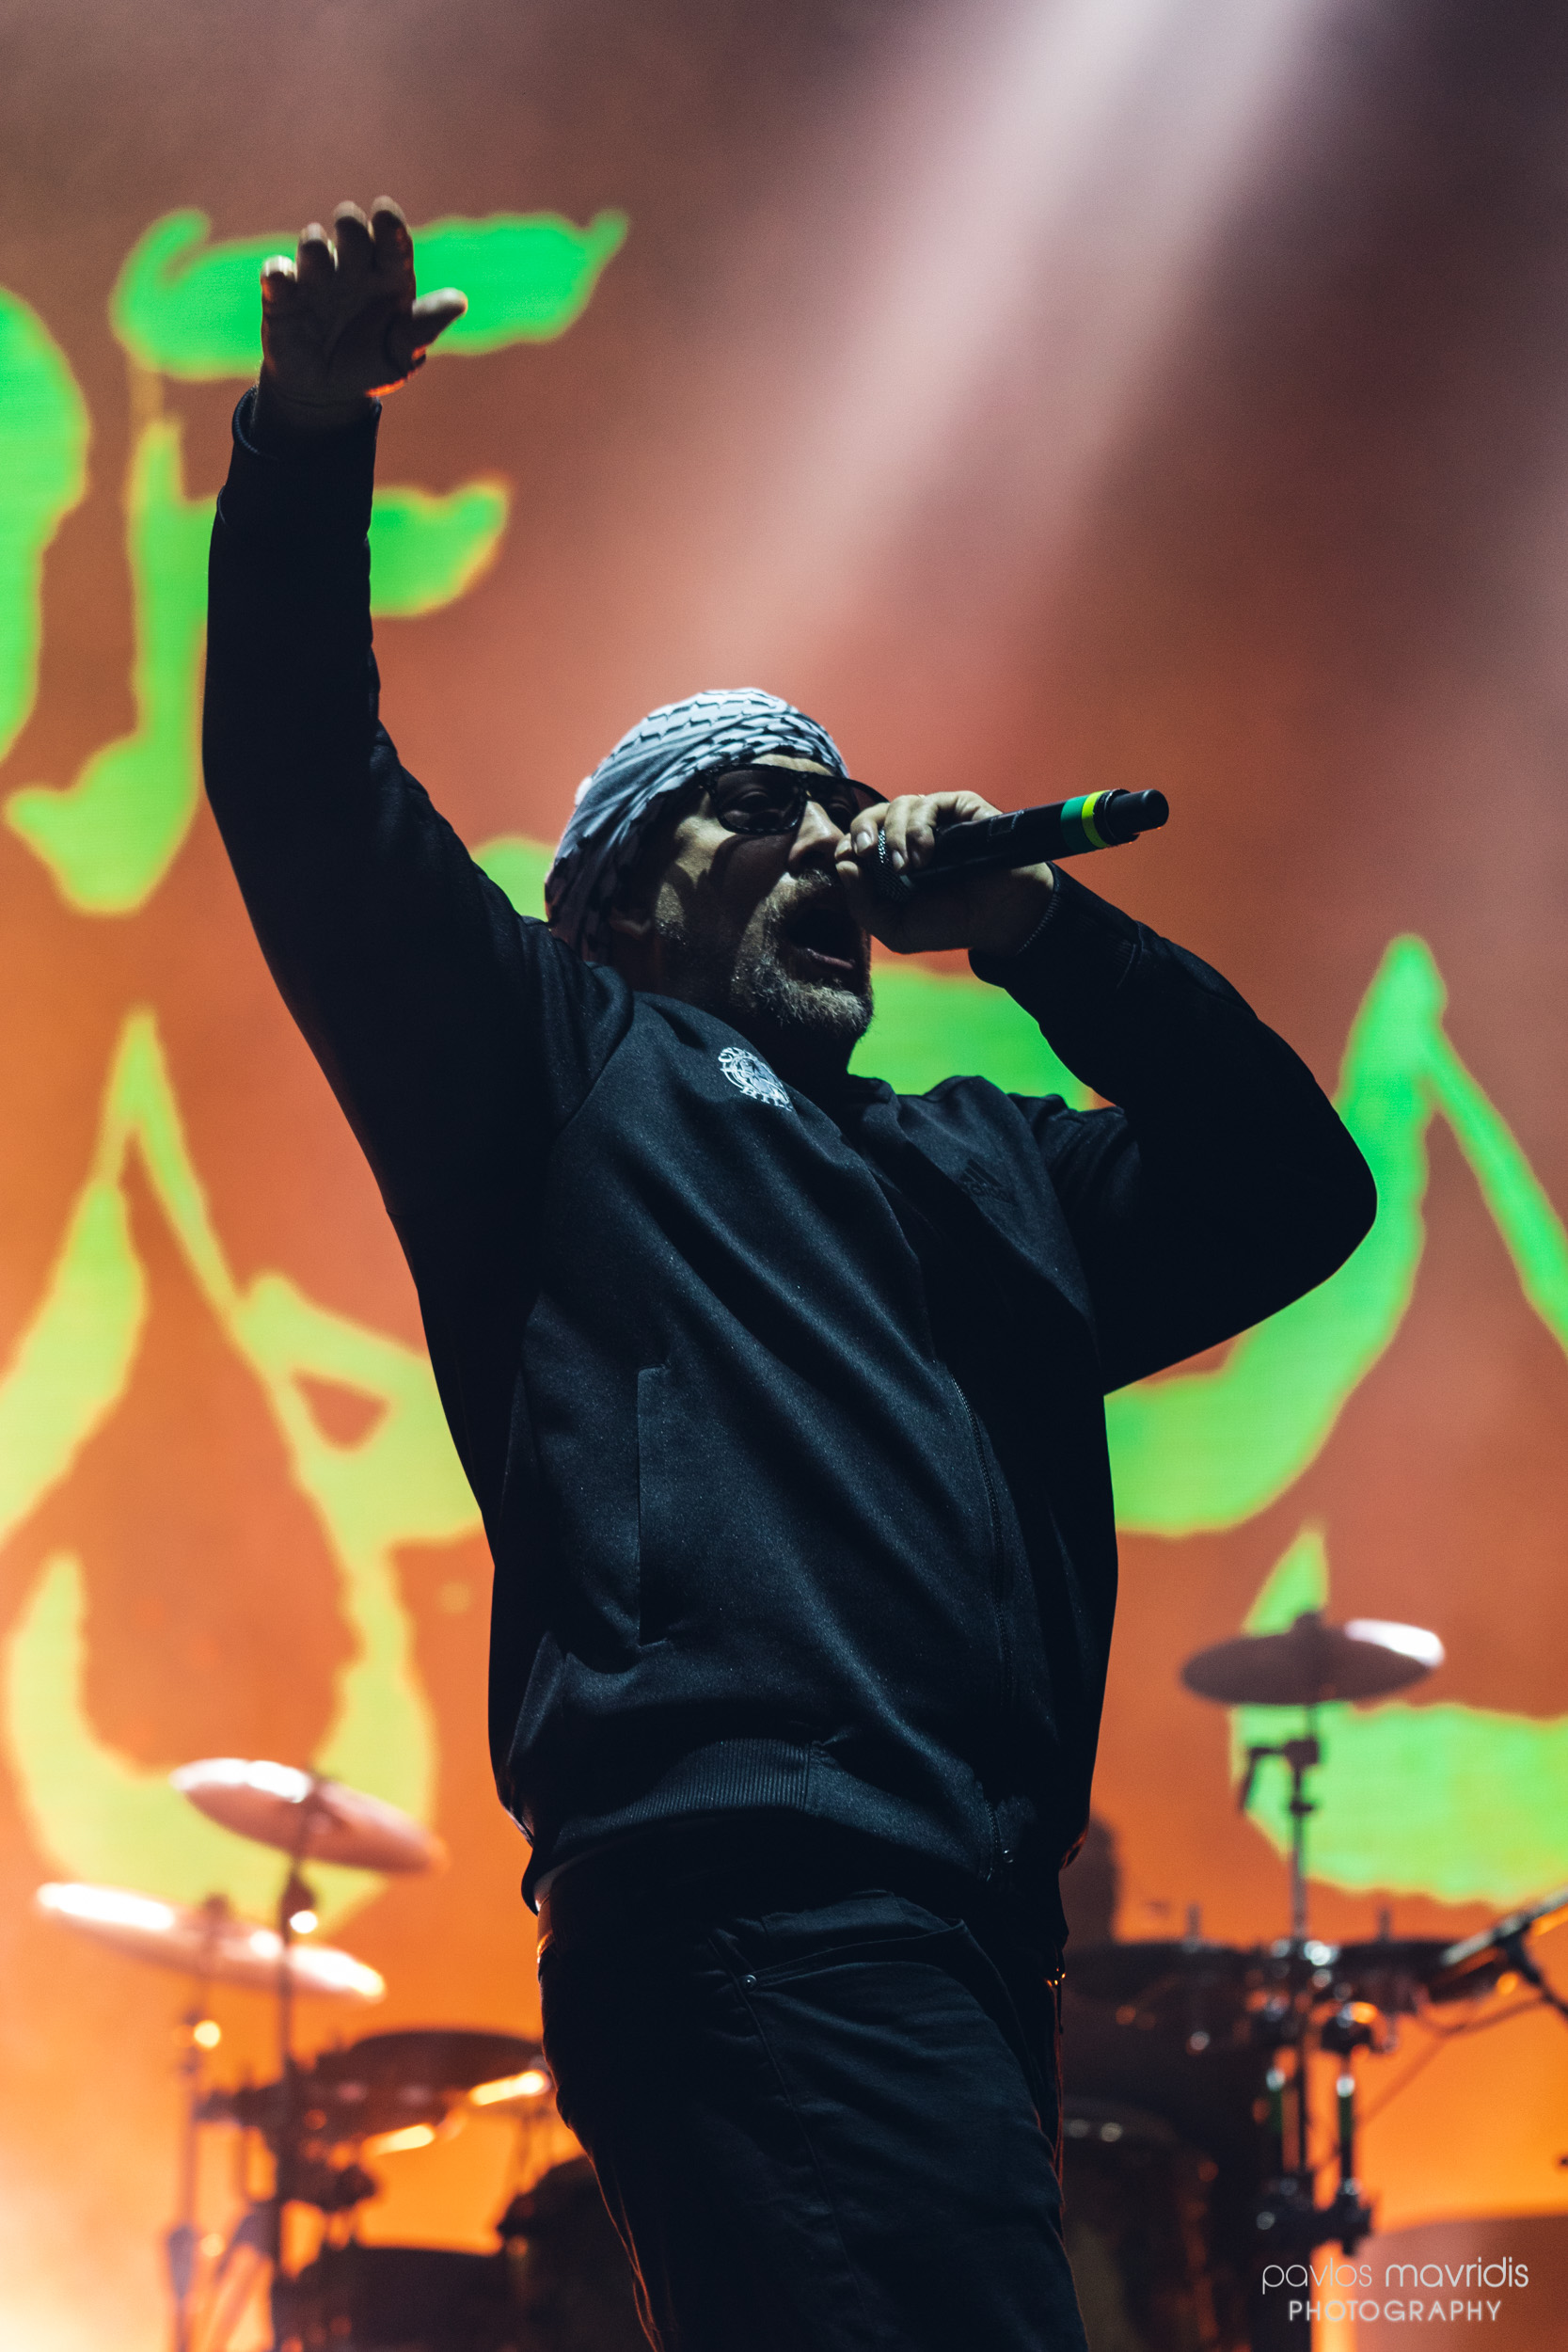 Cypress Hill_Release Athens 2019_08_hires_web.jpg